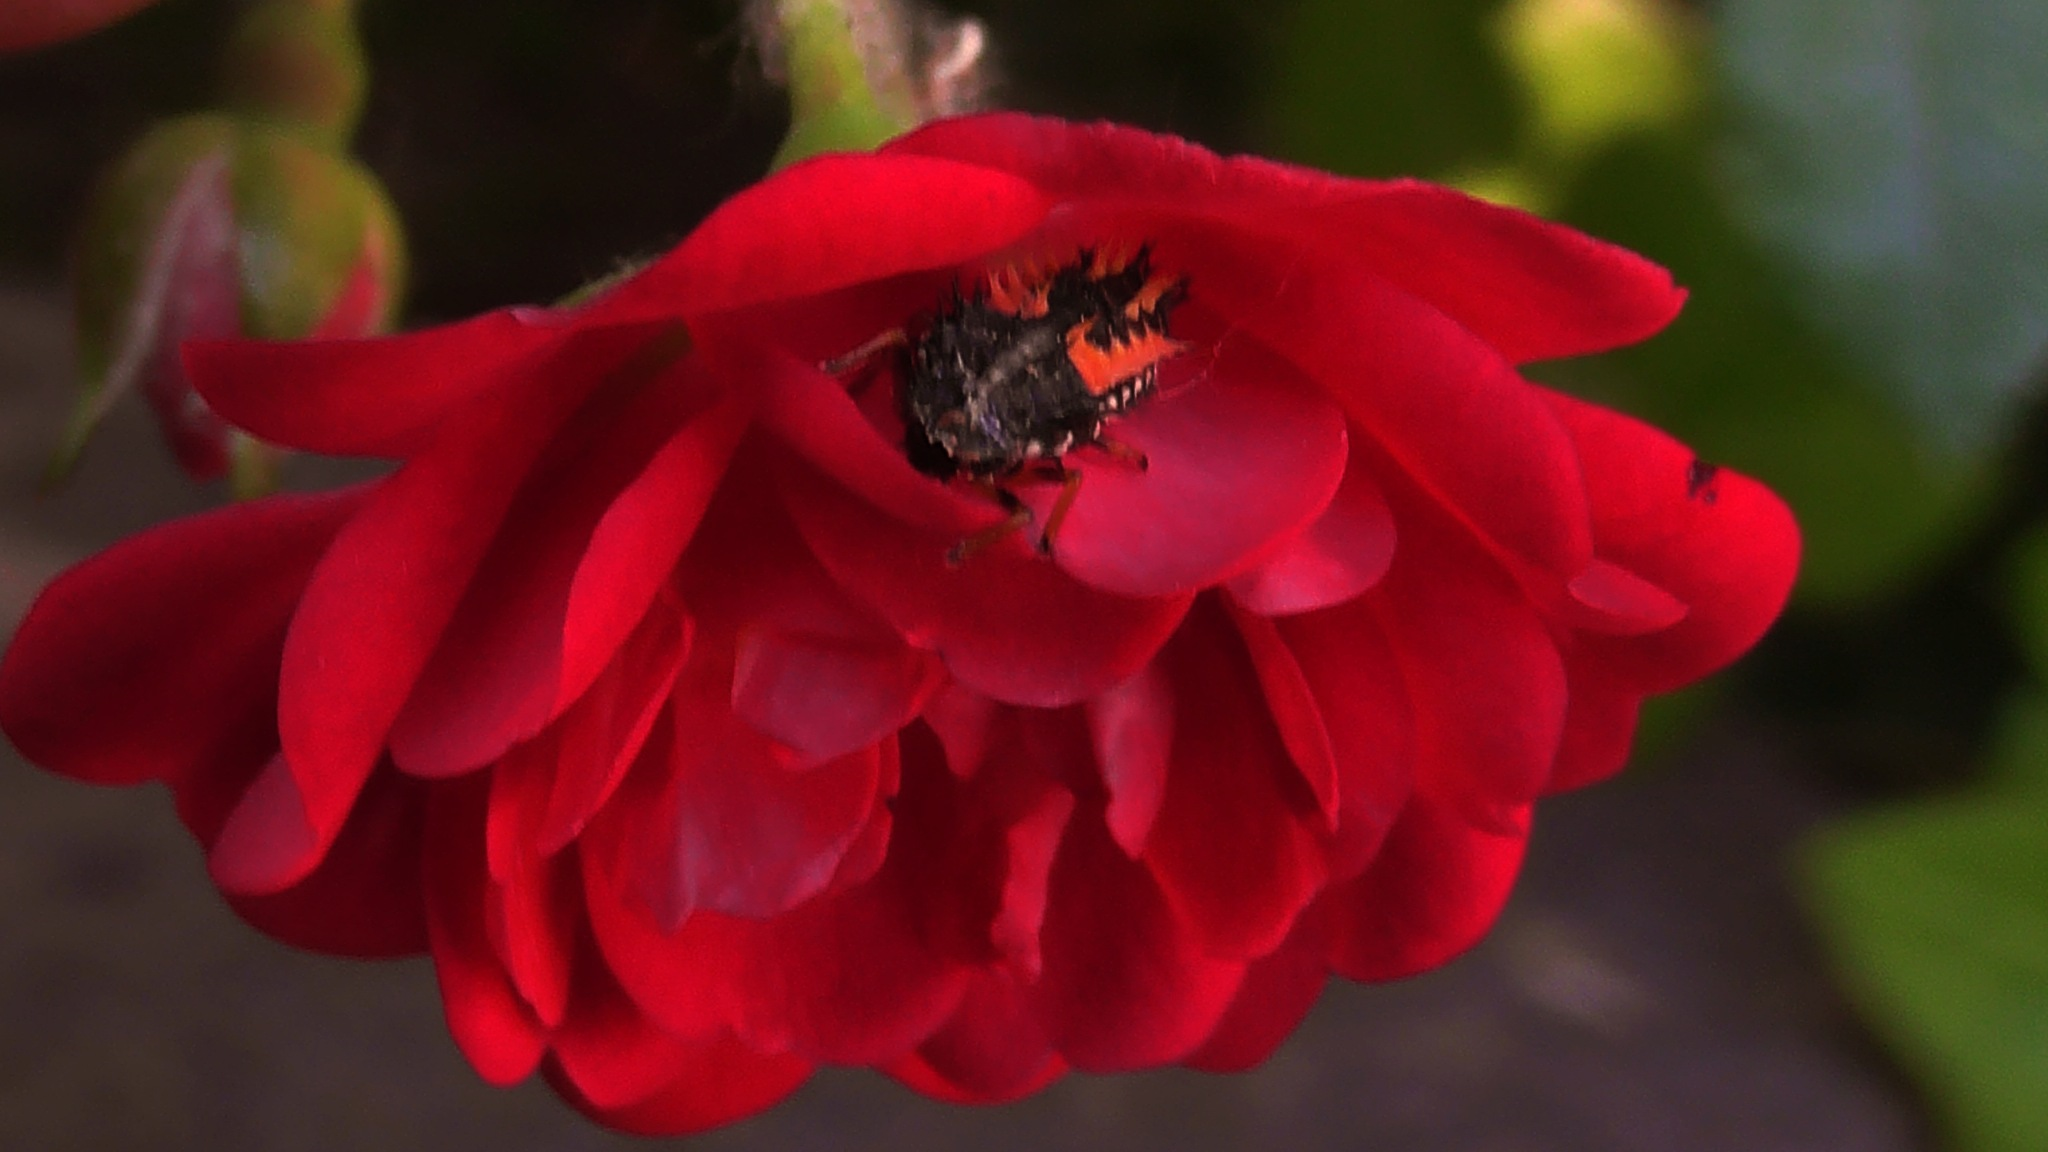 Beetle loves red roses by evakalocsay